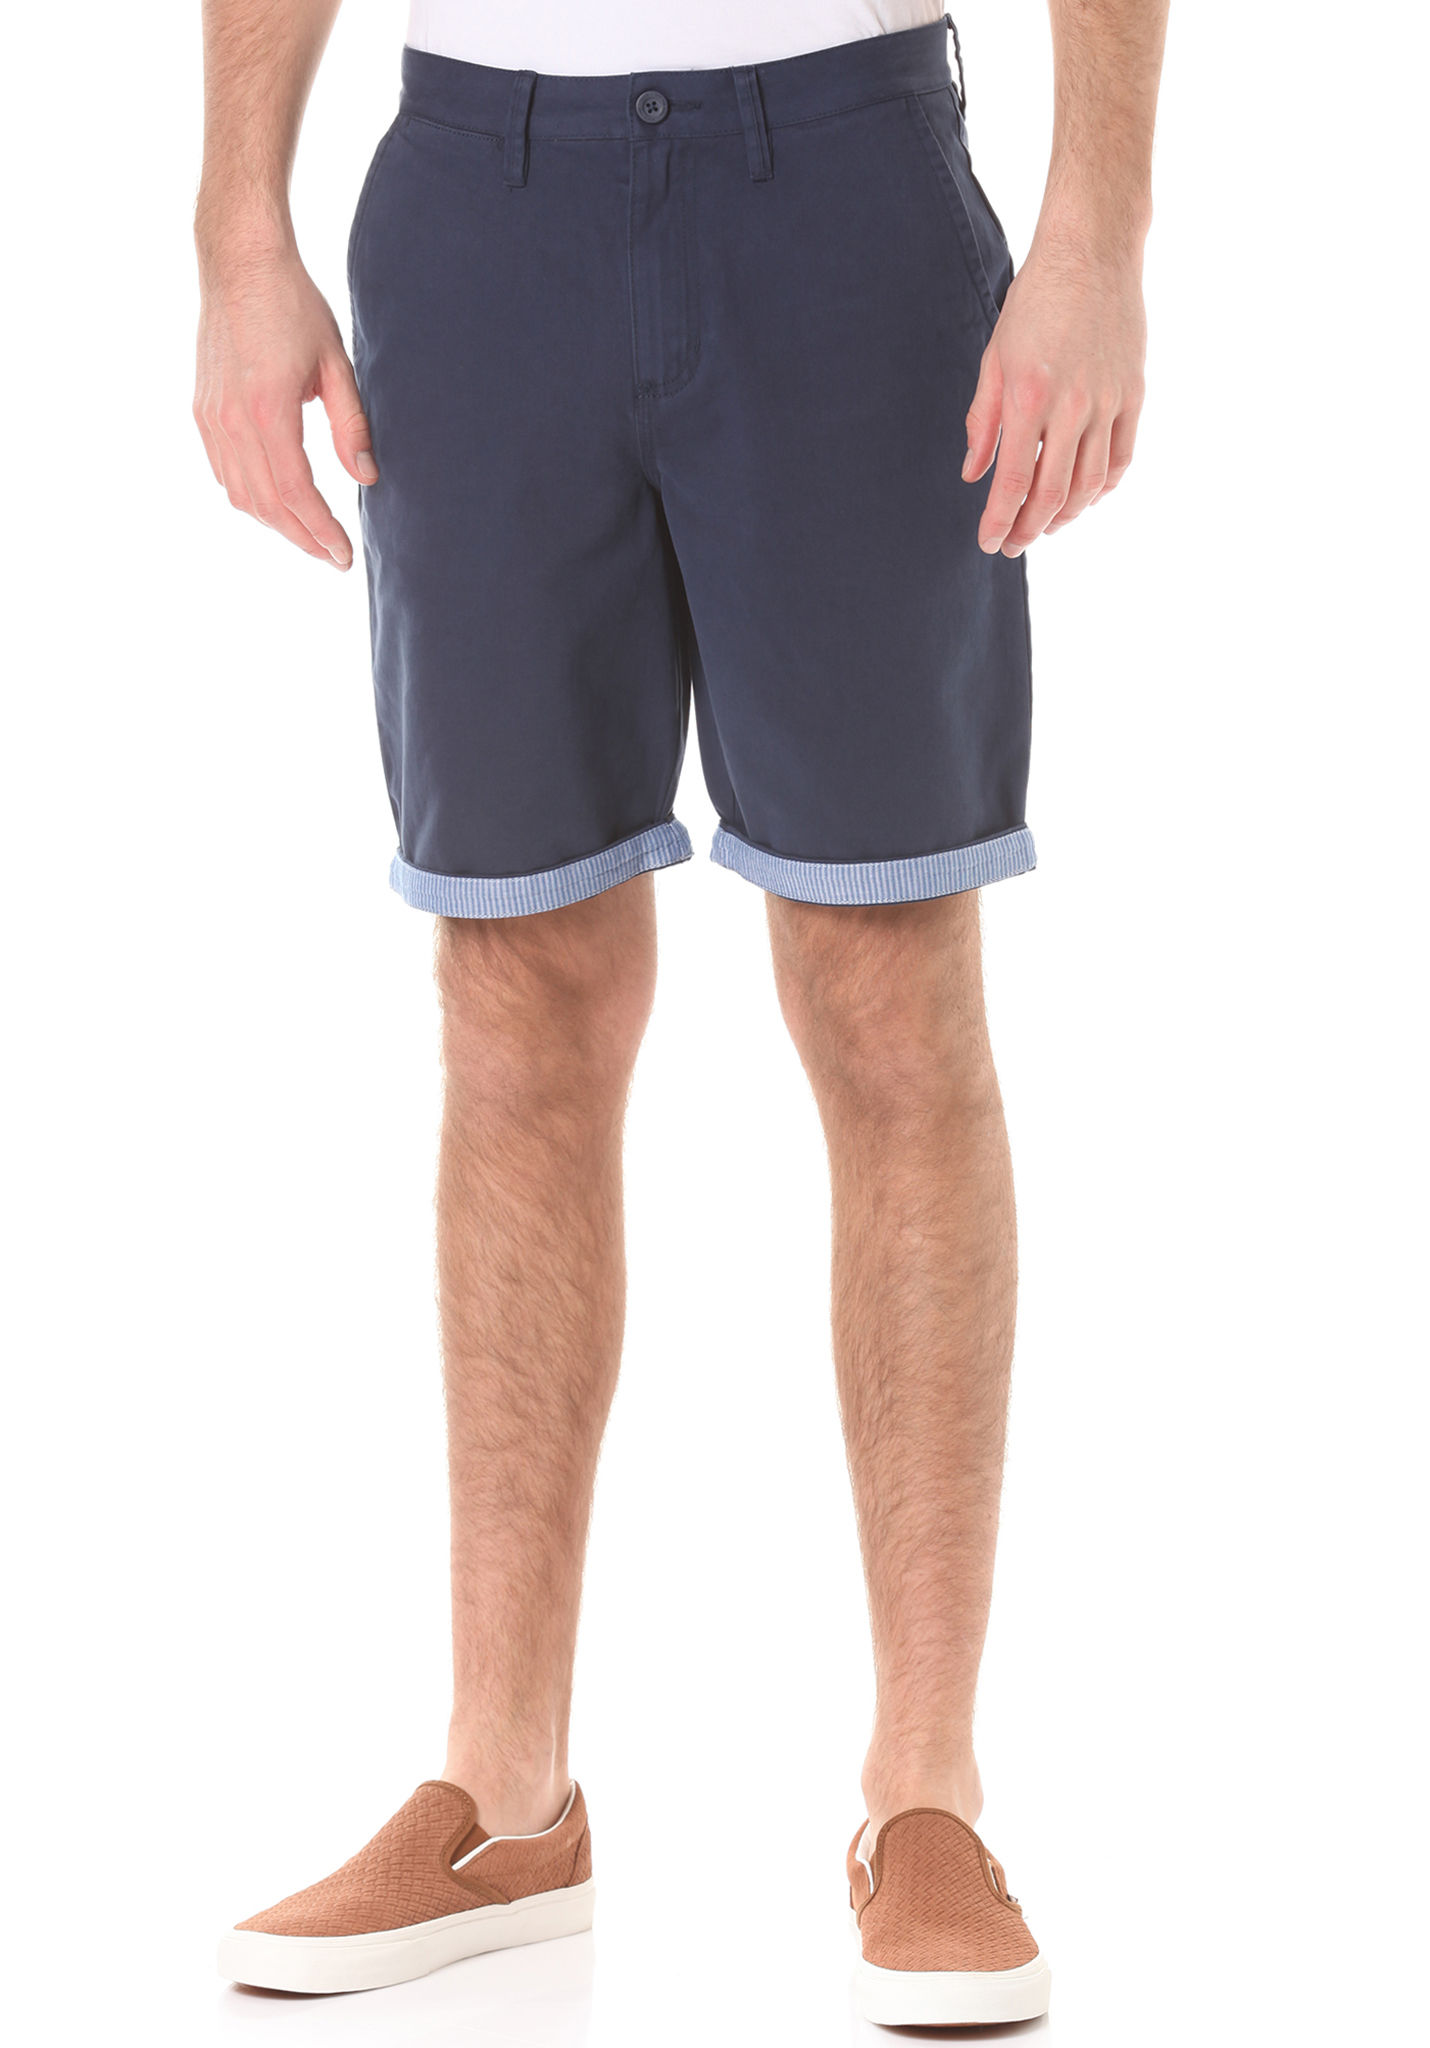 420c27e68a Vans Excerpt Cuff - Chino Shorts for Men - Blue - Planet Sports